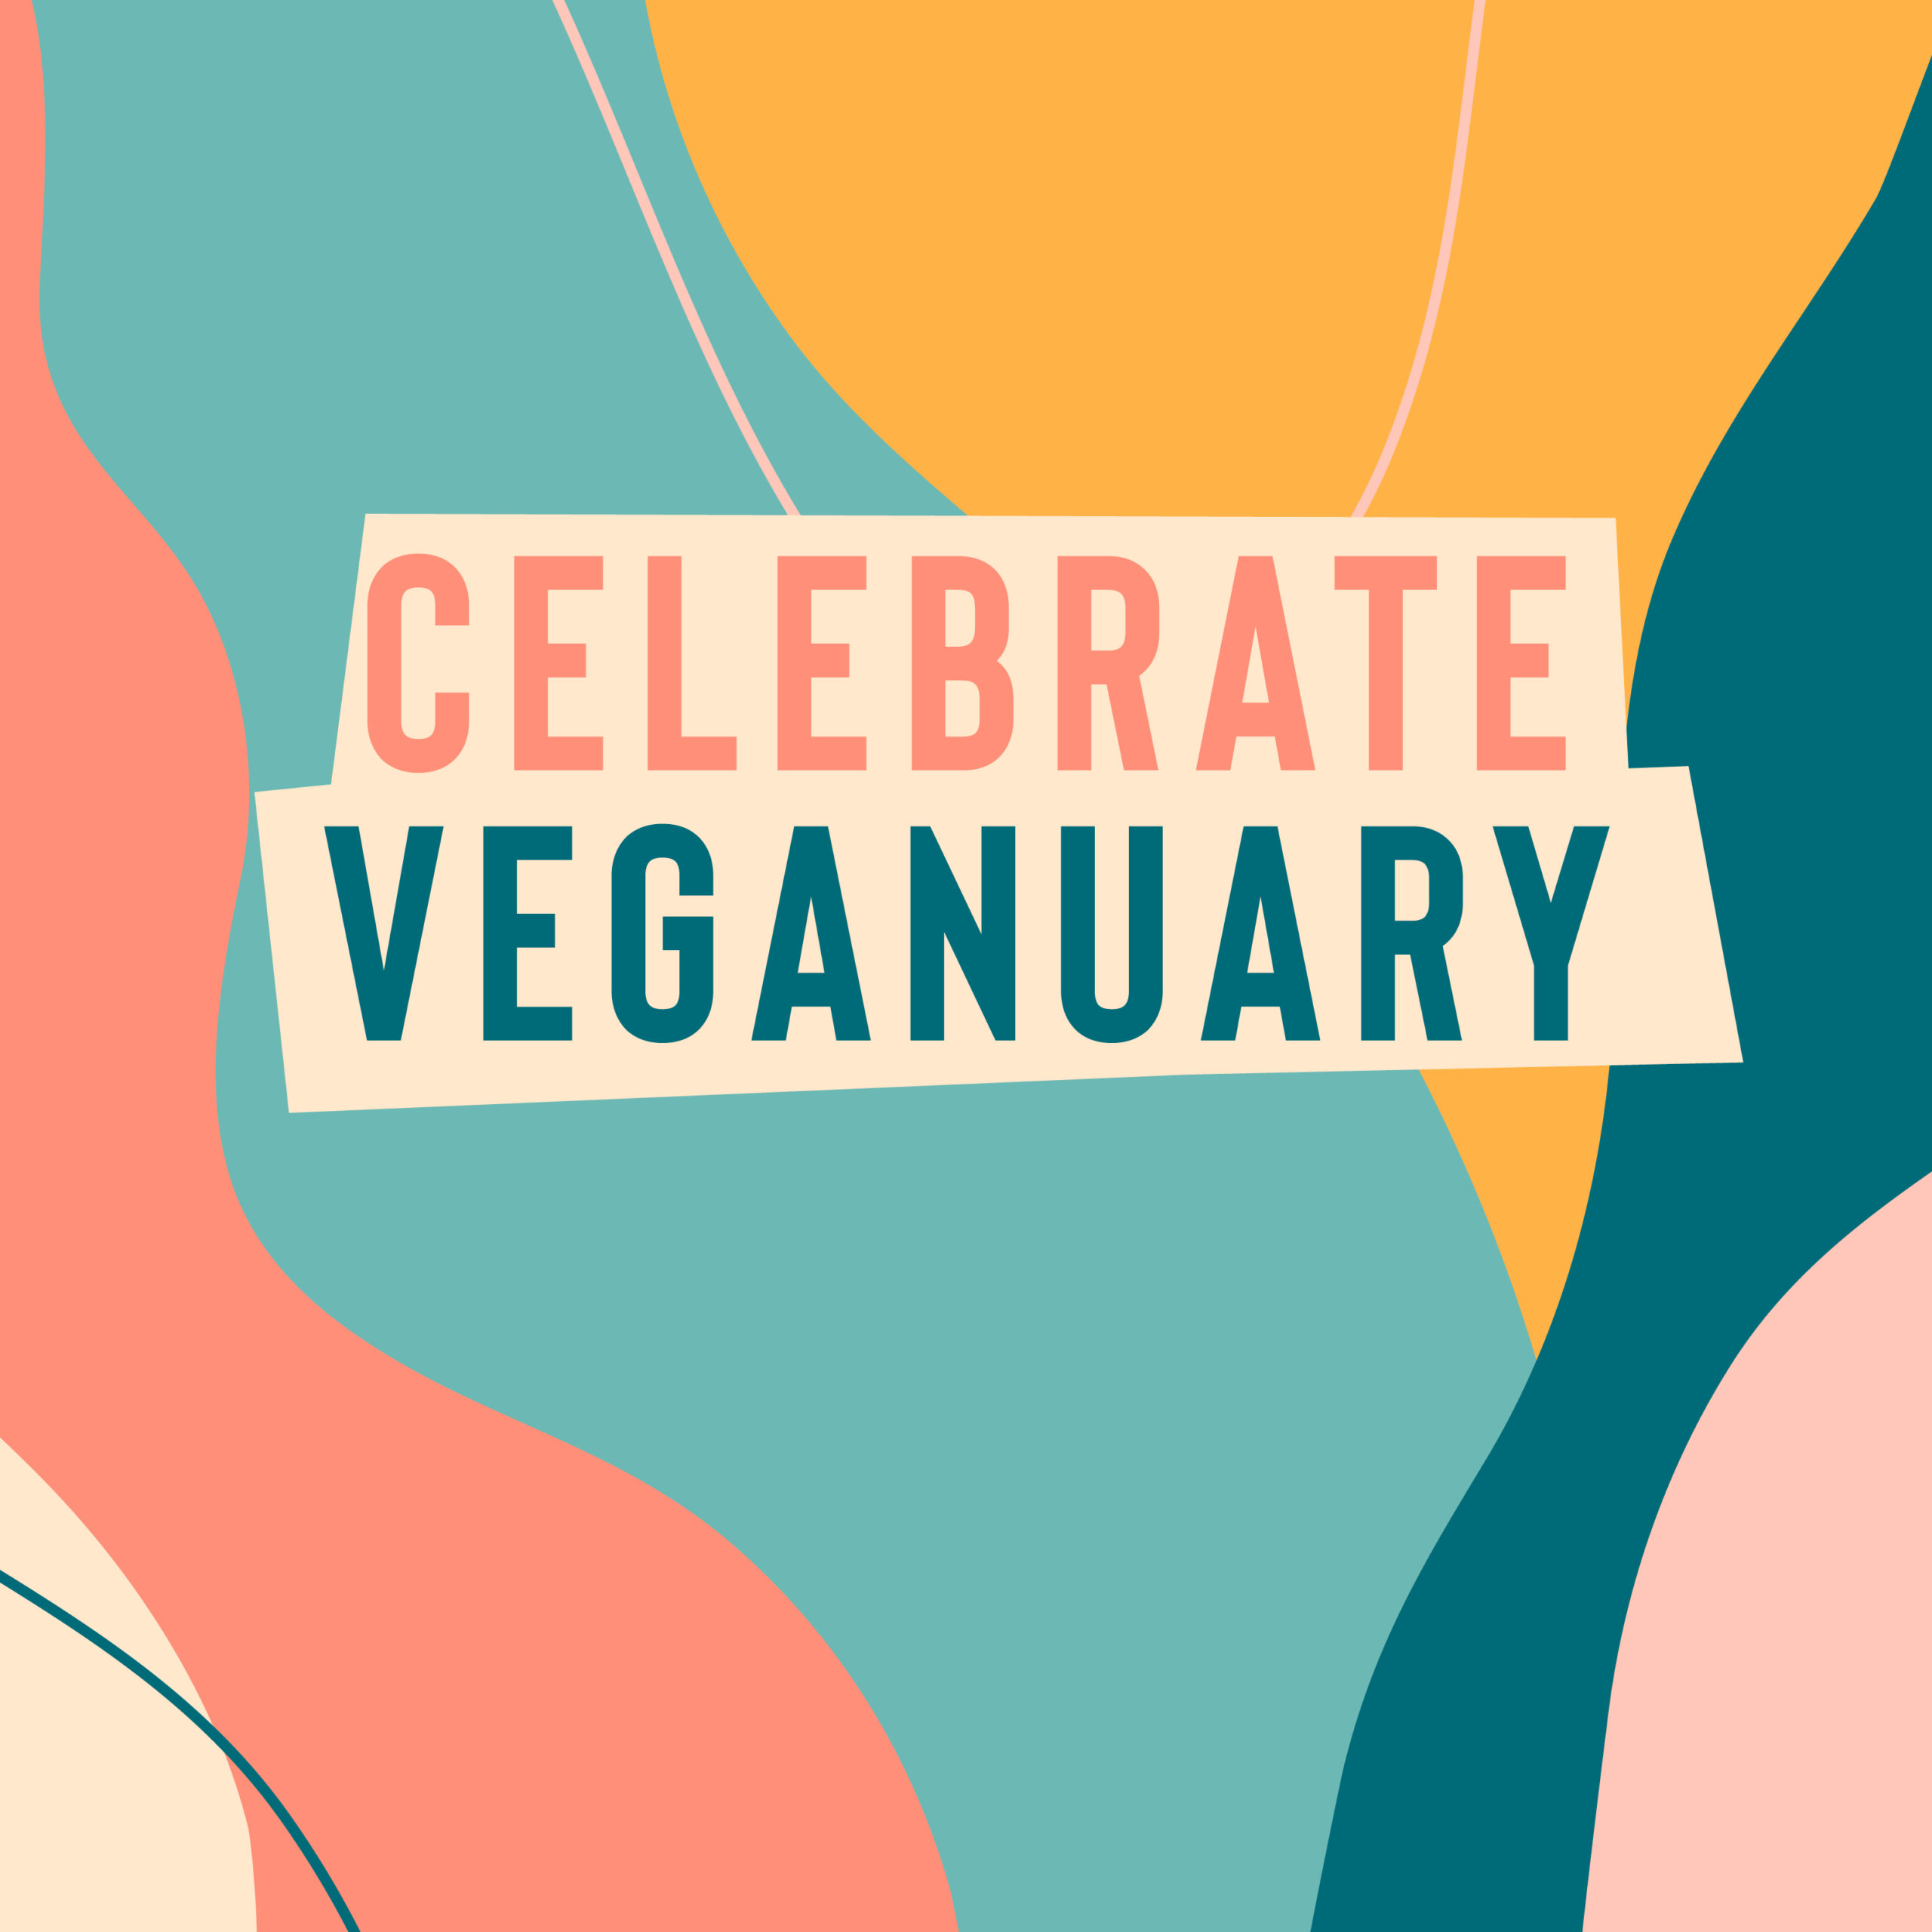 Celebrate Veganuary with 15% off selected vegan friendly products